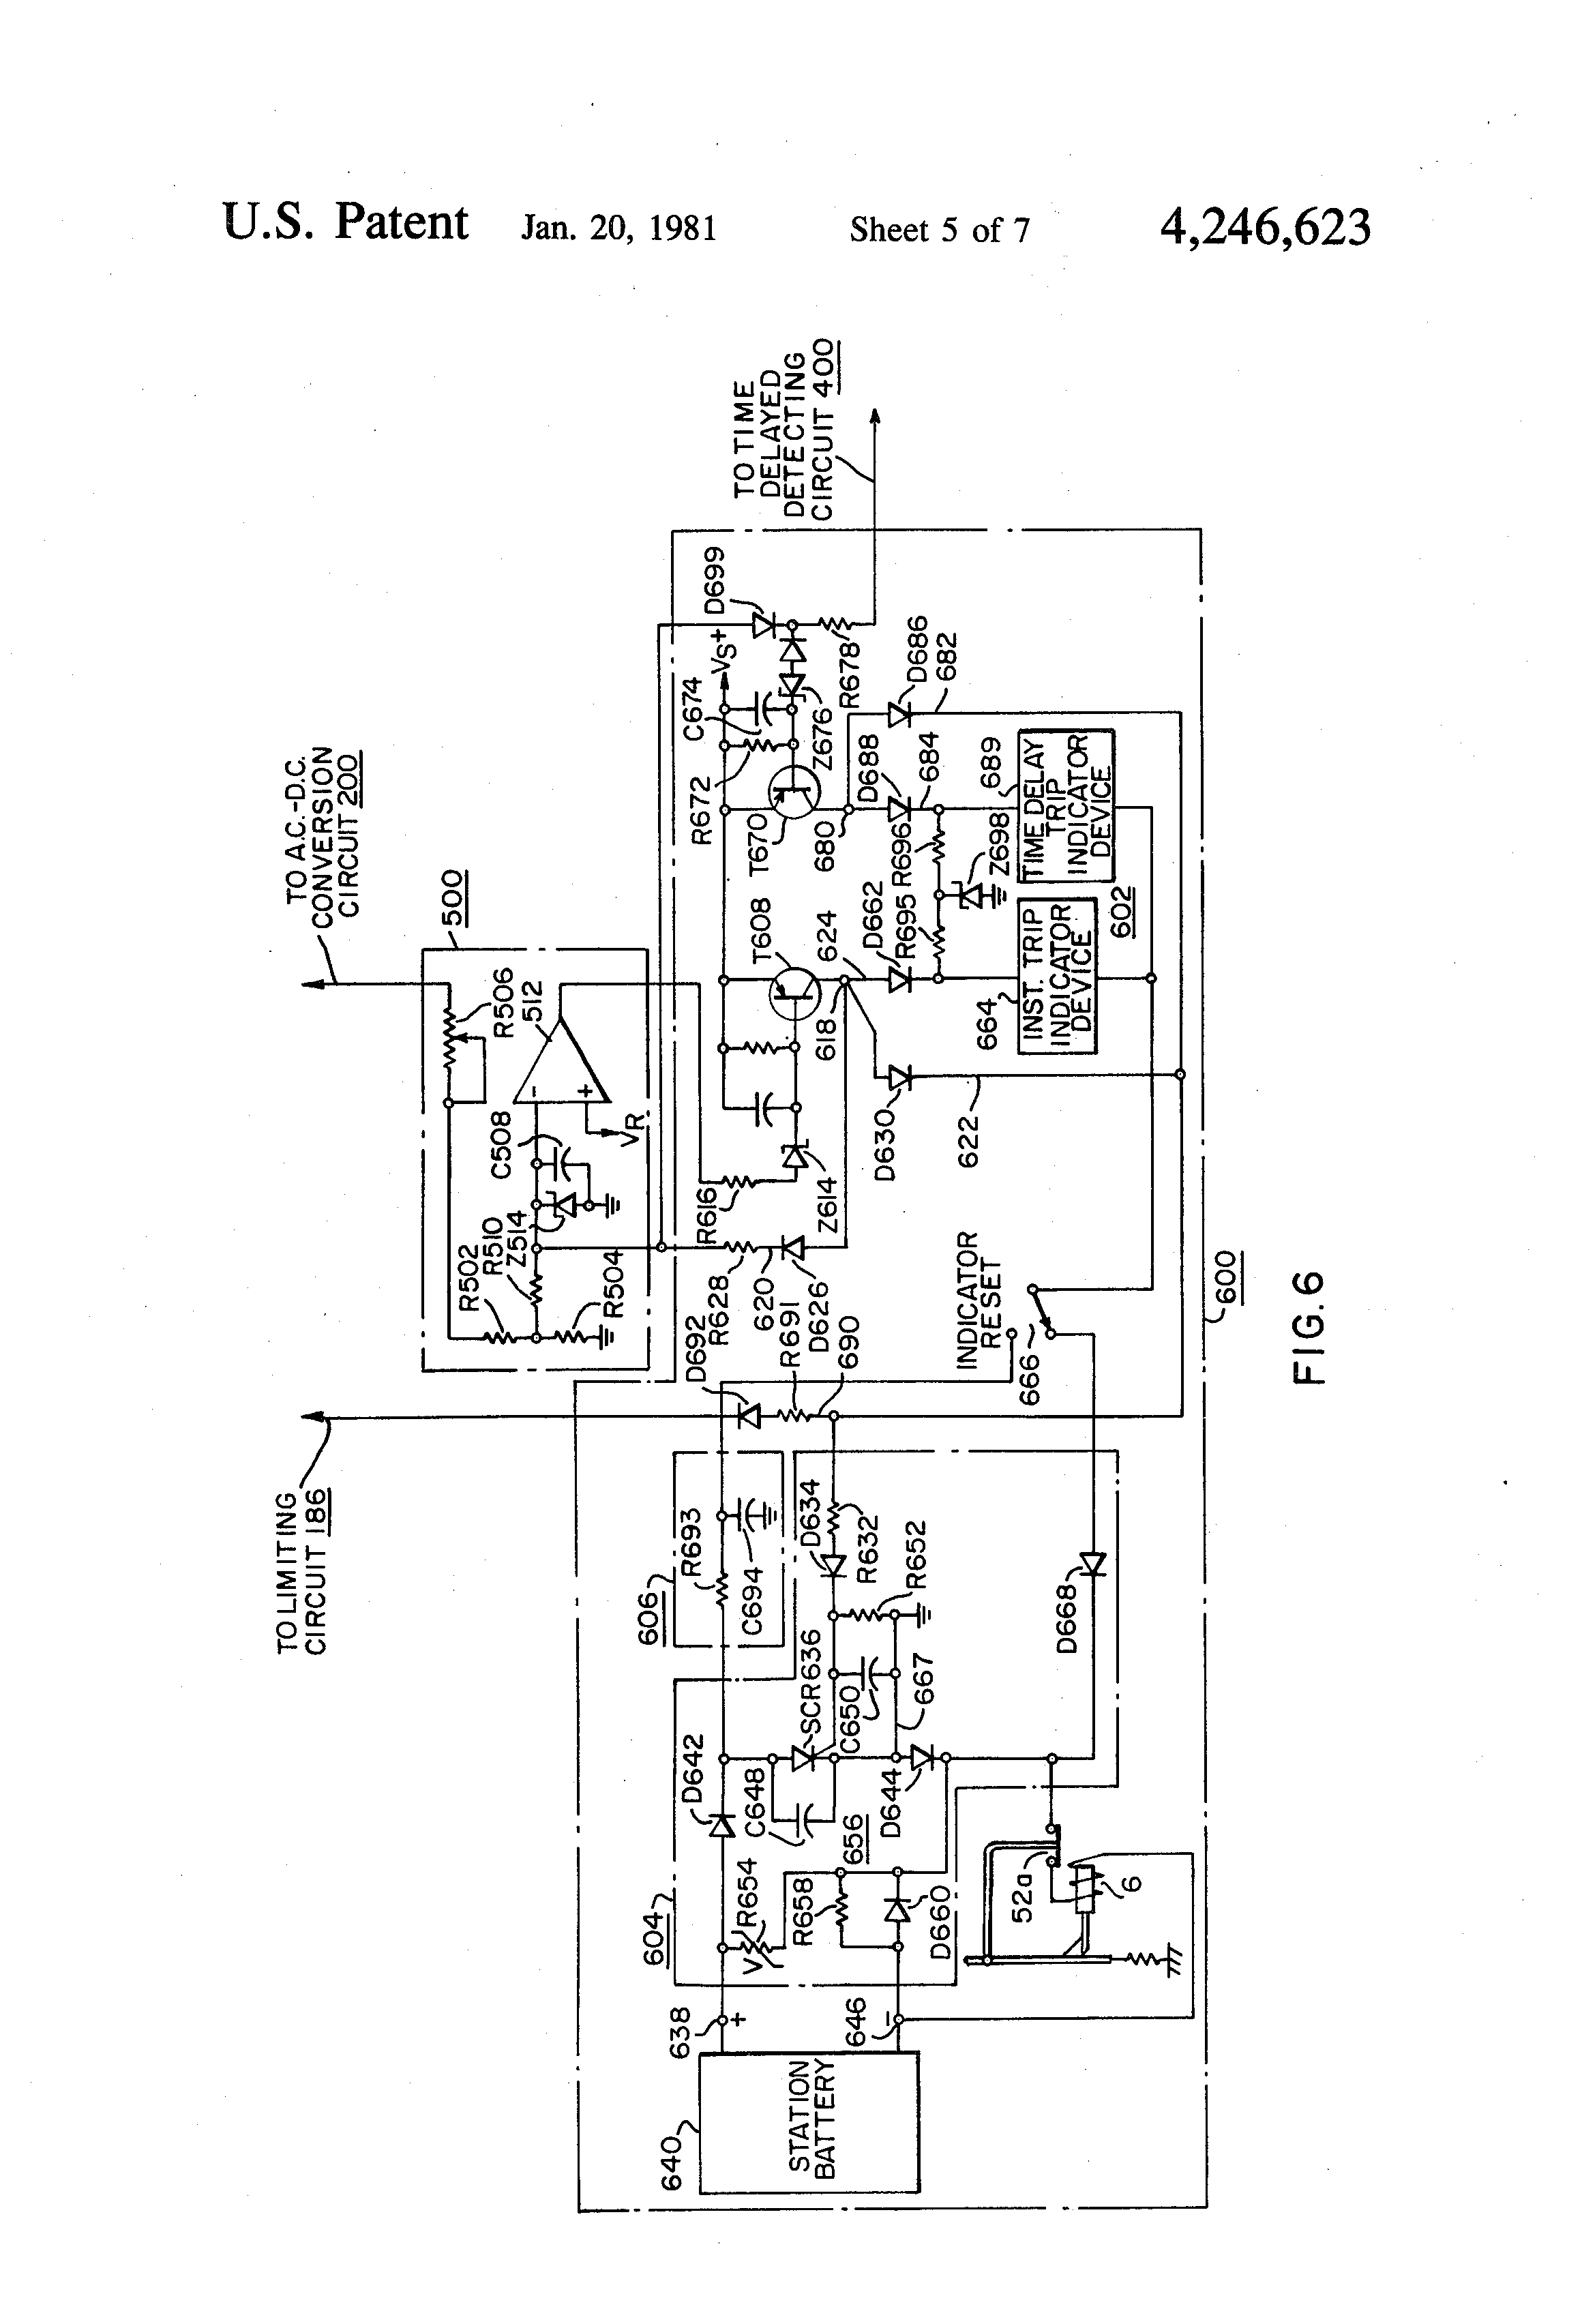 Patent US Protective Relay Device Google Patents - Static relay working principle